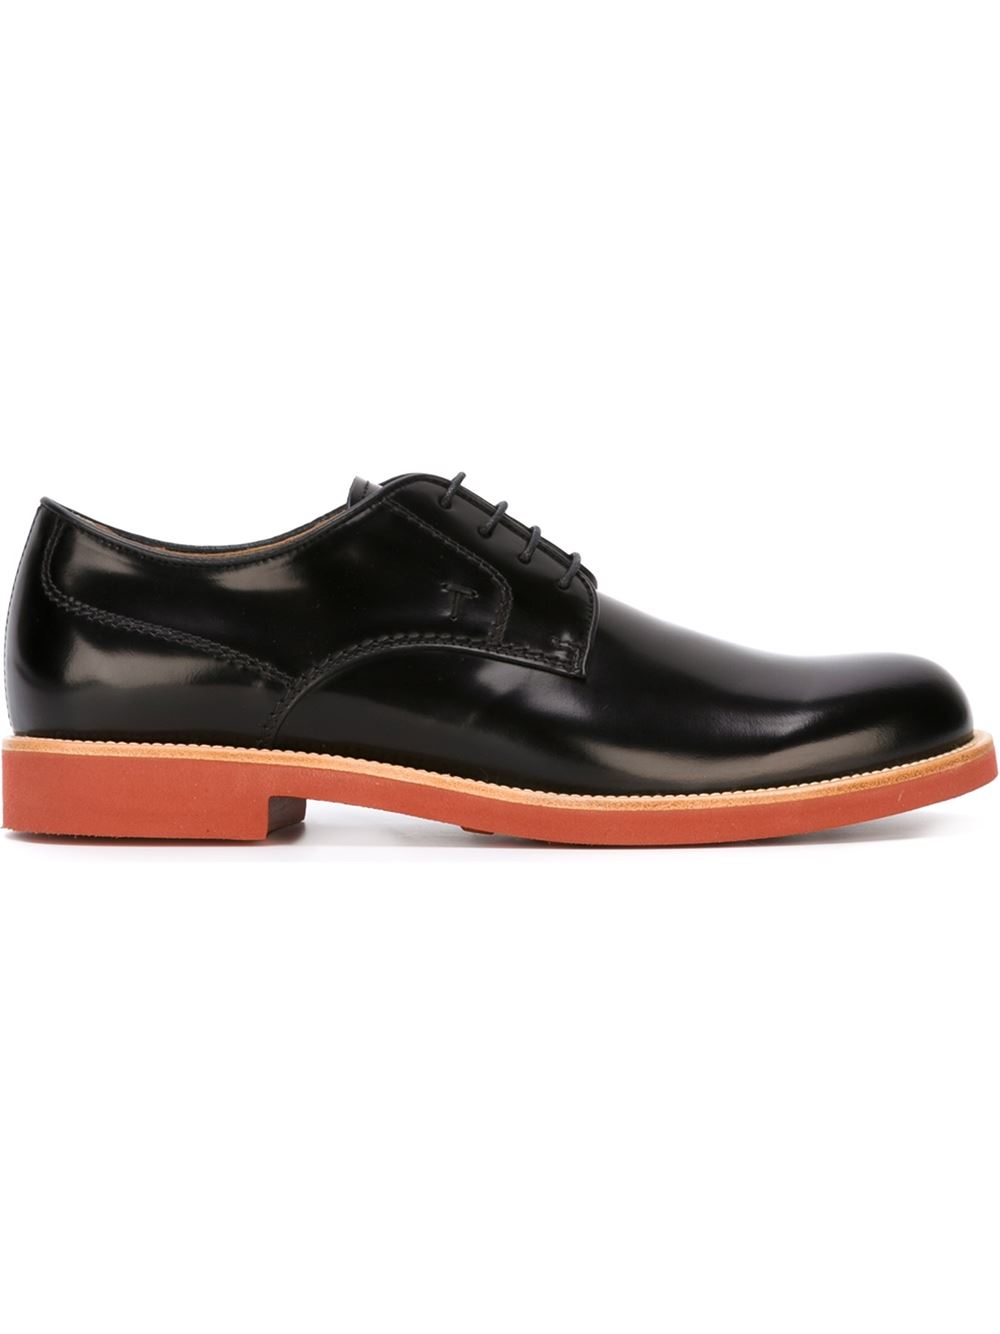 Tods Black Derby Shoes